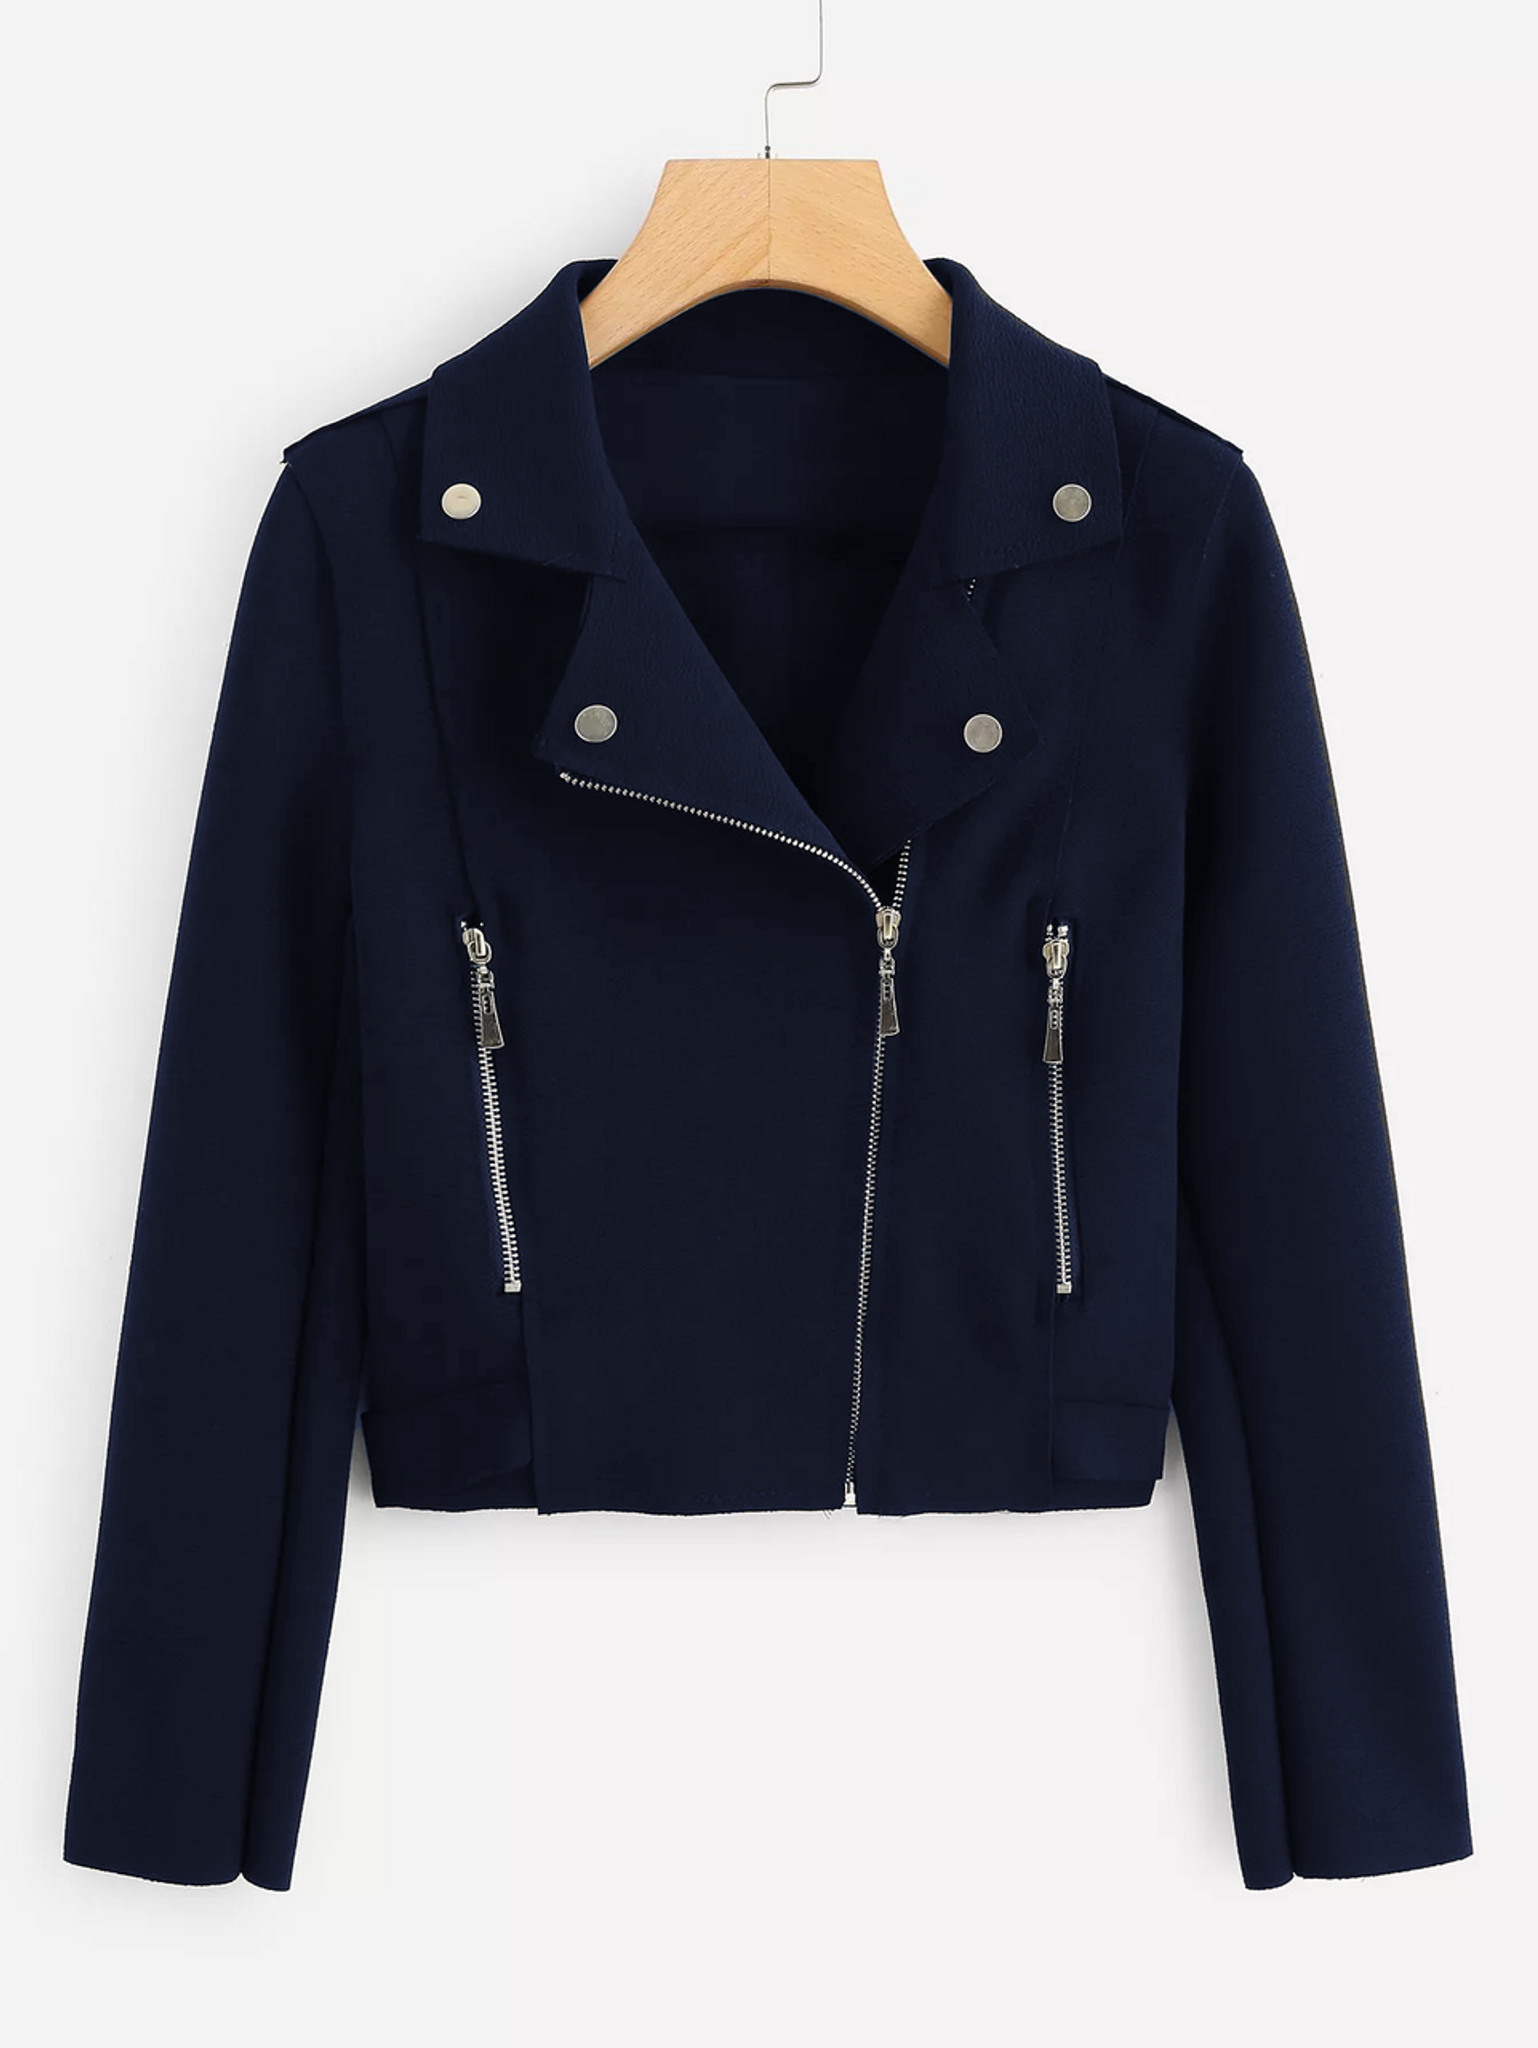 Fifth Avenue Cropped Fleece Moto Jacket LNA1001 - Navy Blue